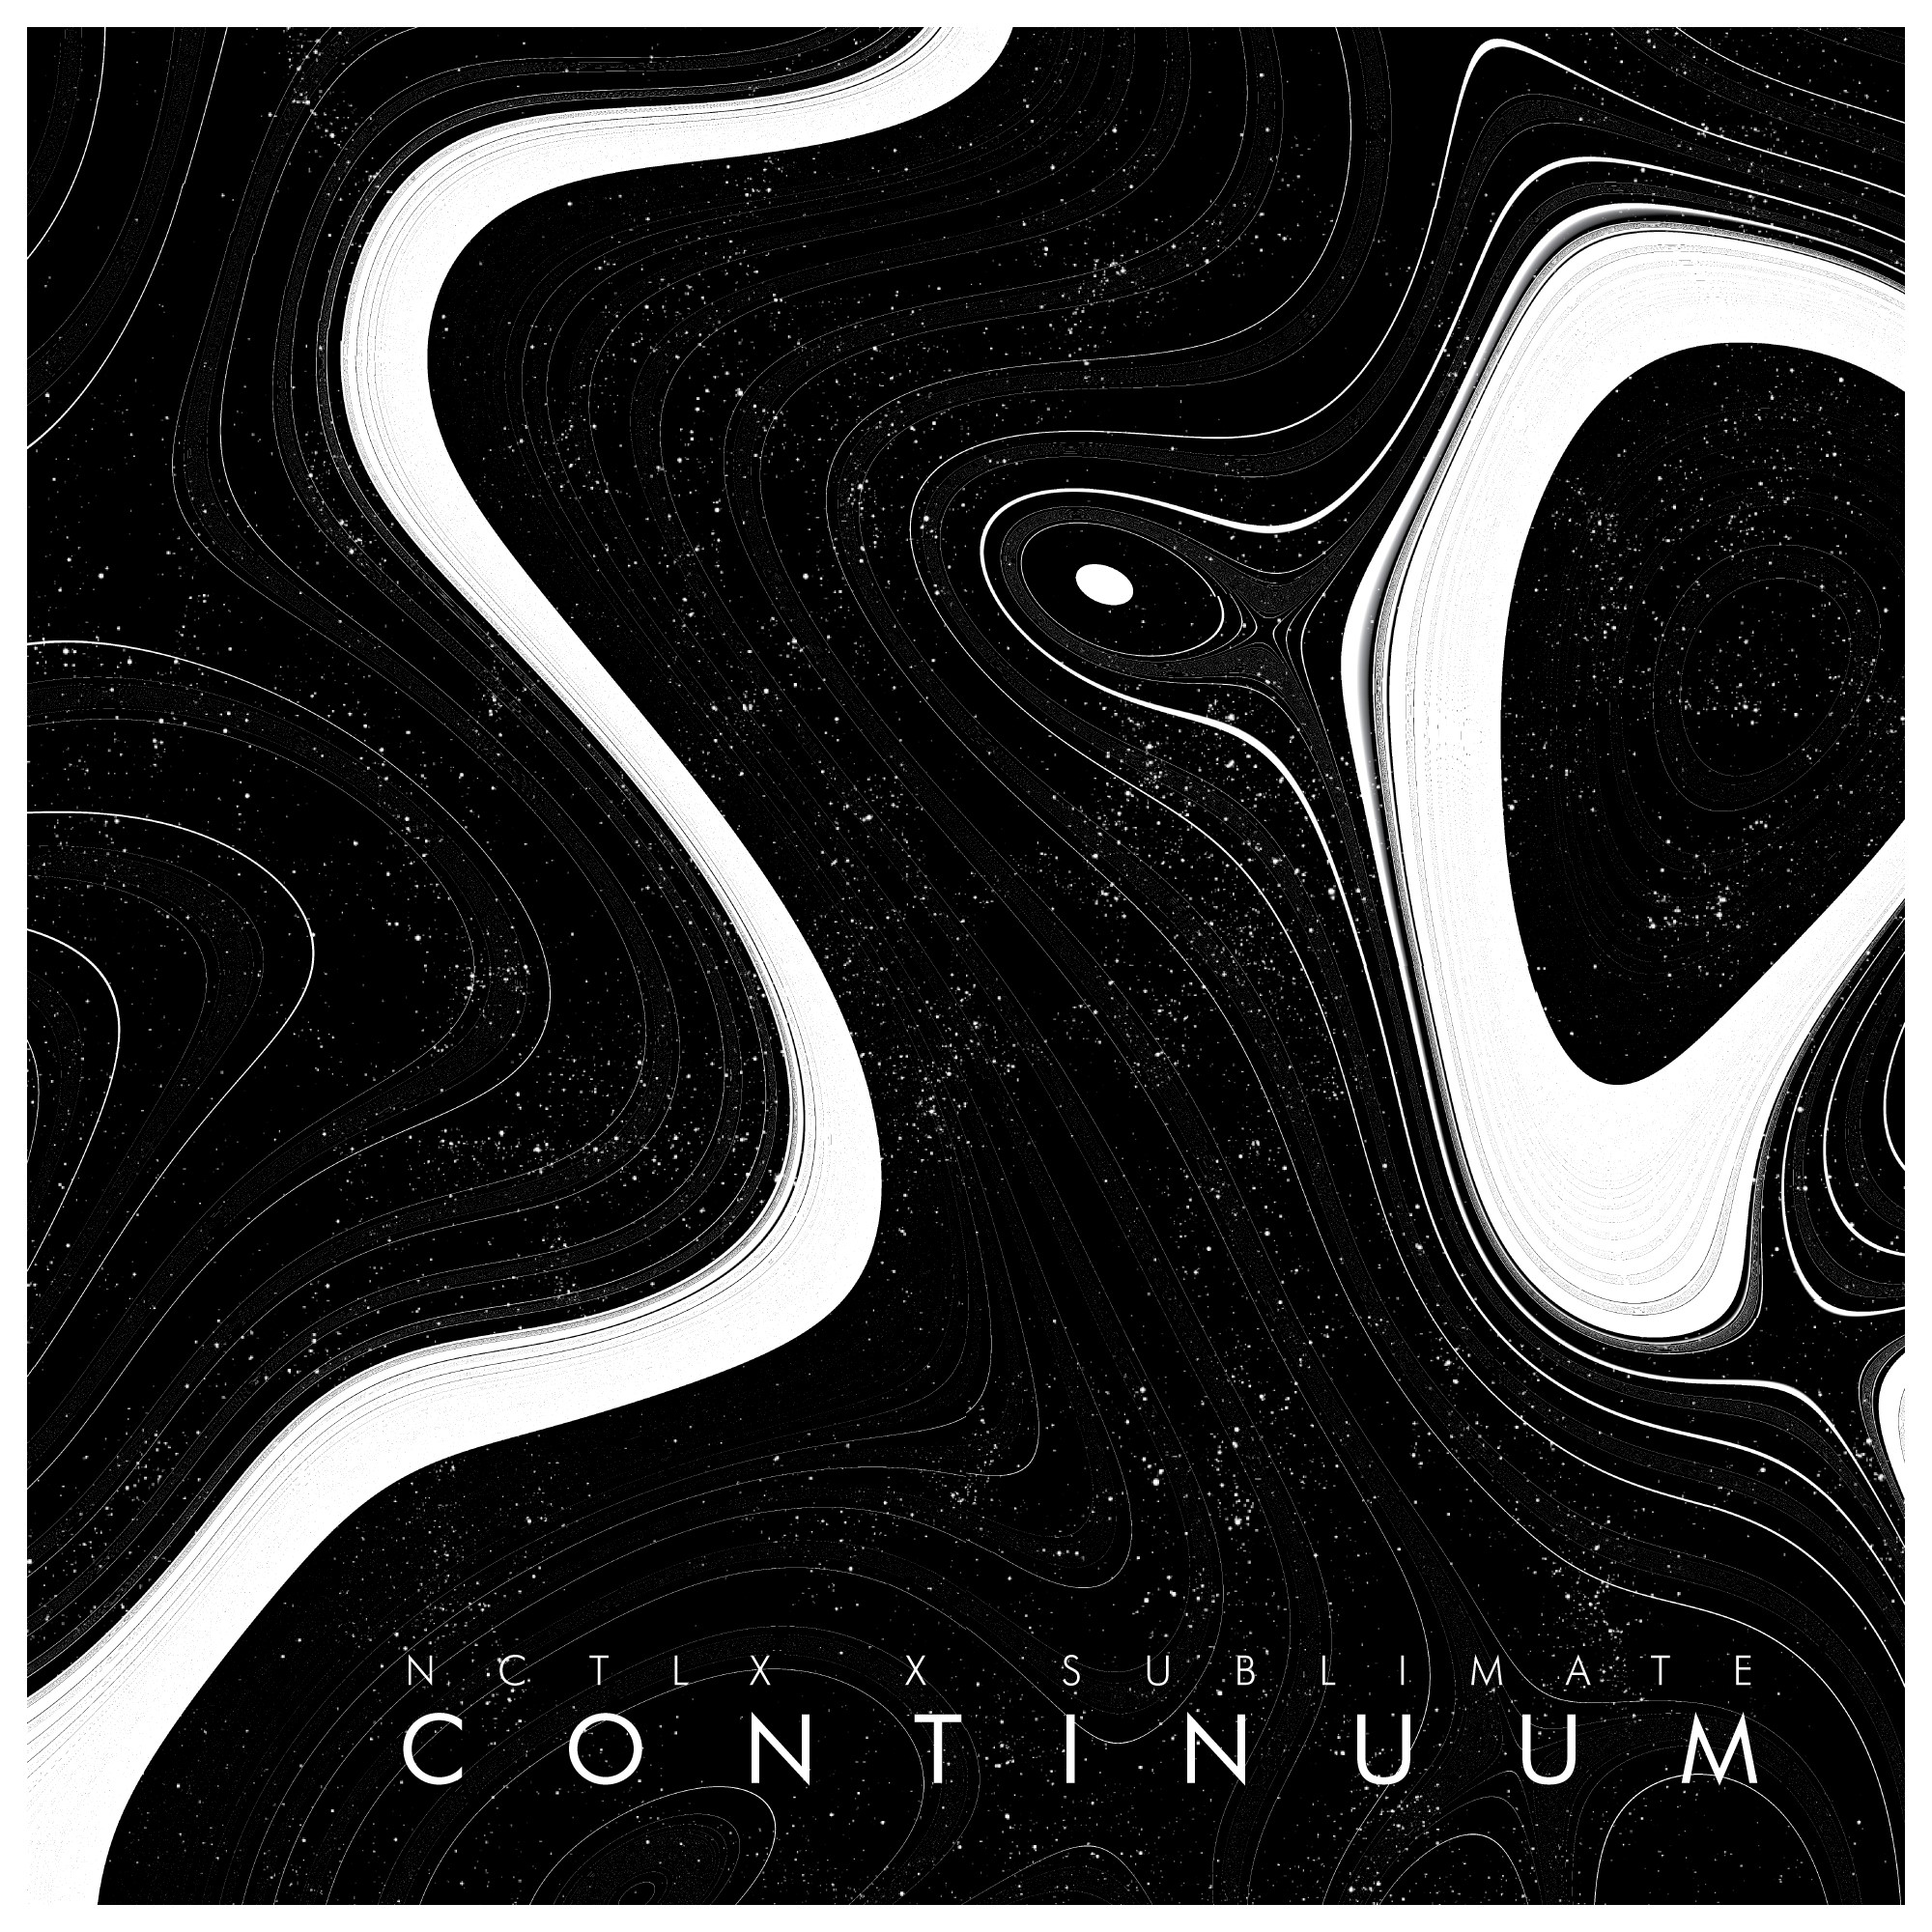 NCTLX x Sublimate - Continuum (cover)